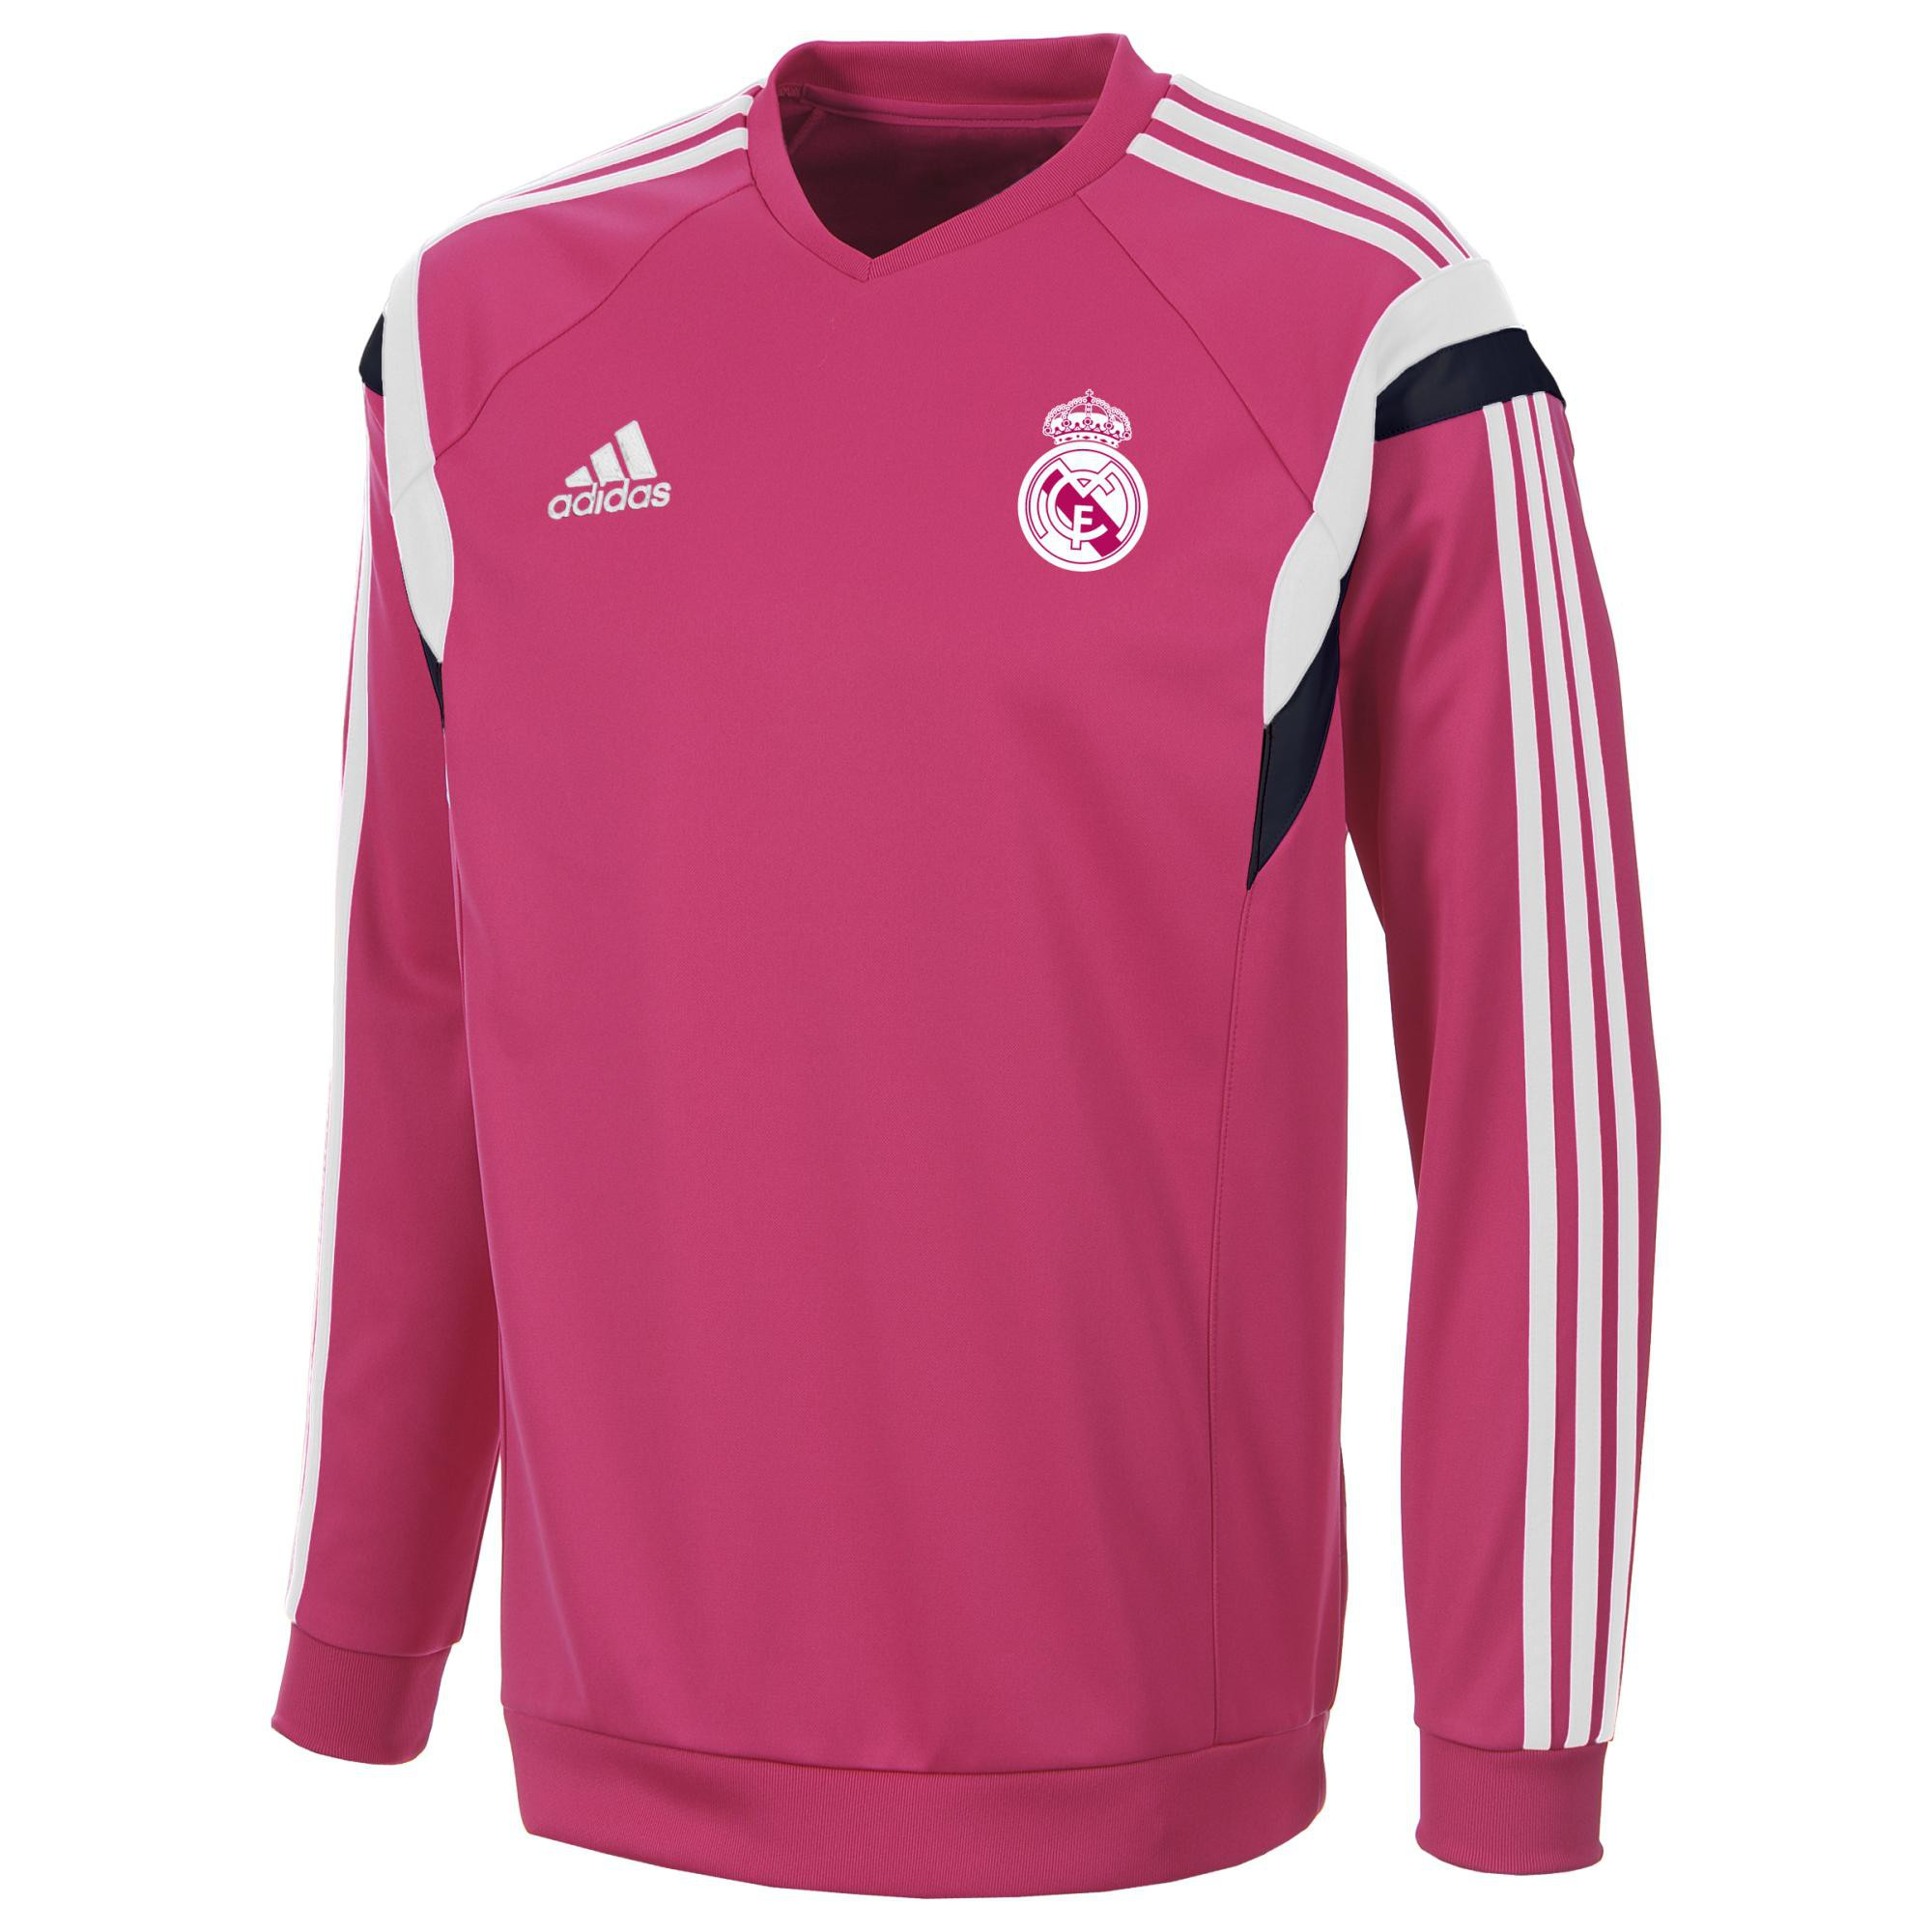 adidas real madrid sweat top rose 2014 2015 taille s sweat entrainement rayon. Black Bedroom Furniture Sets. Home Design Ideas